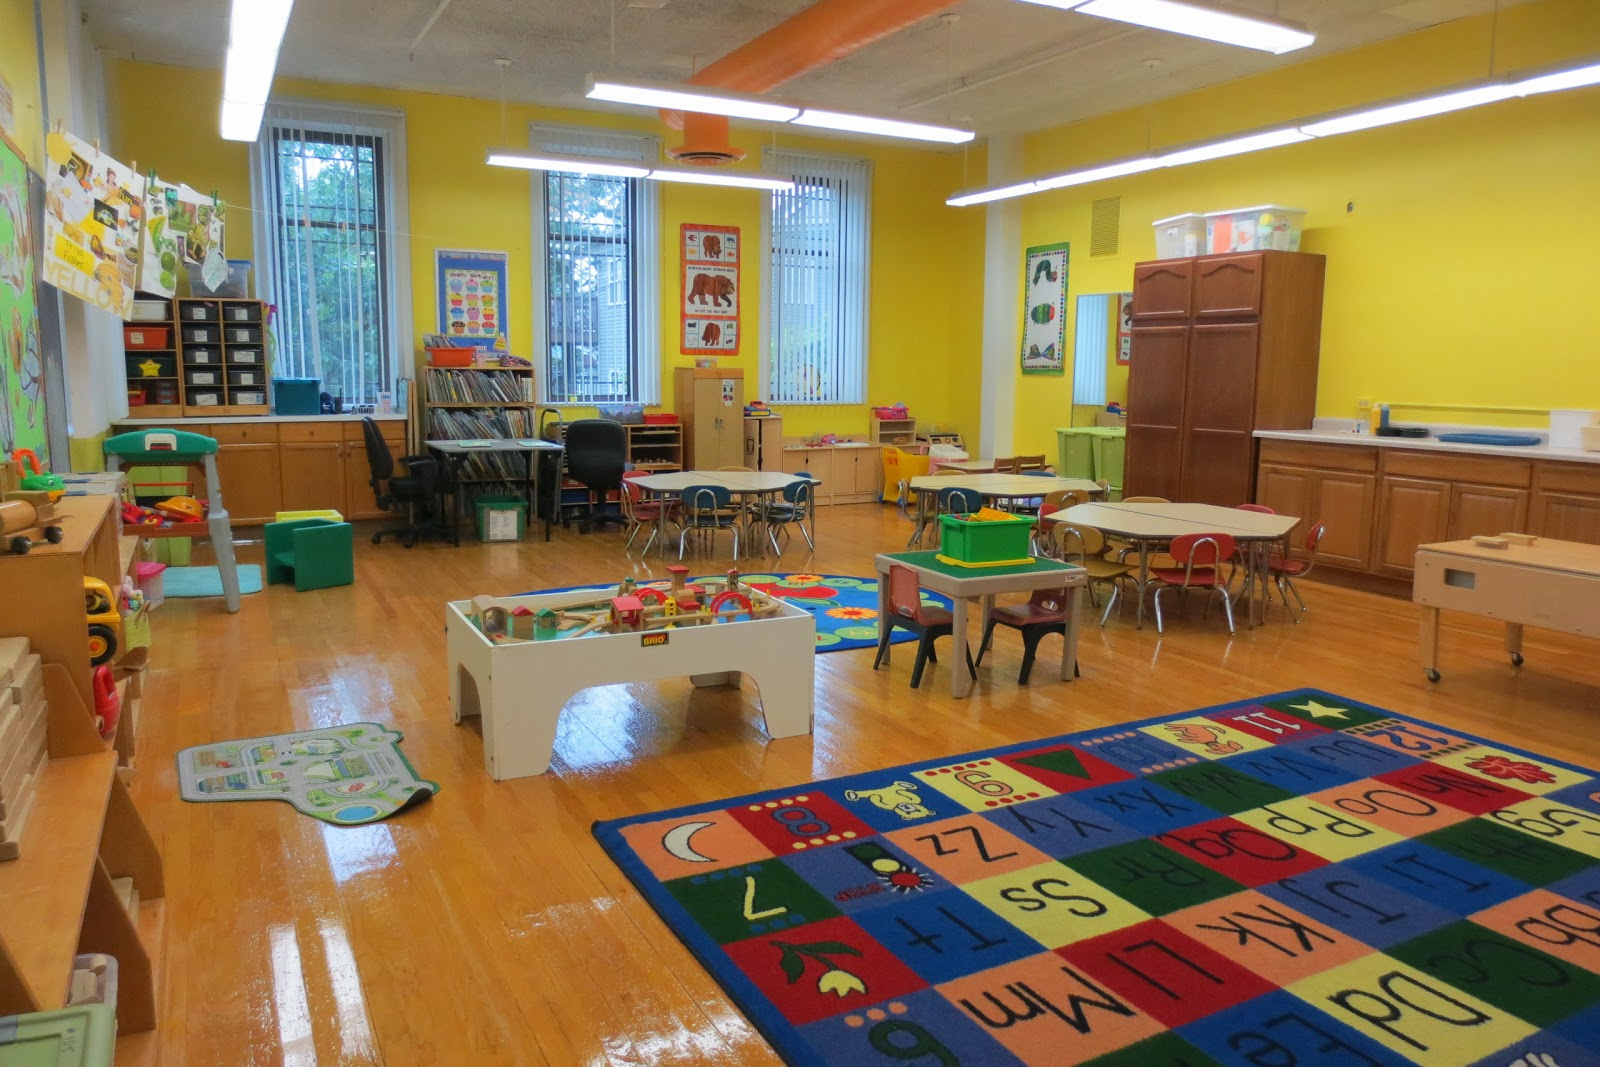 lincoln center - Pictures For Preschool